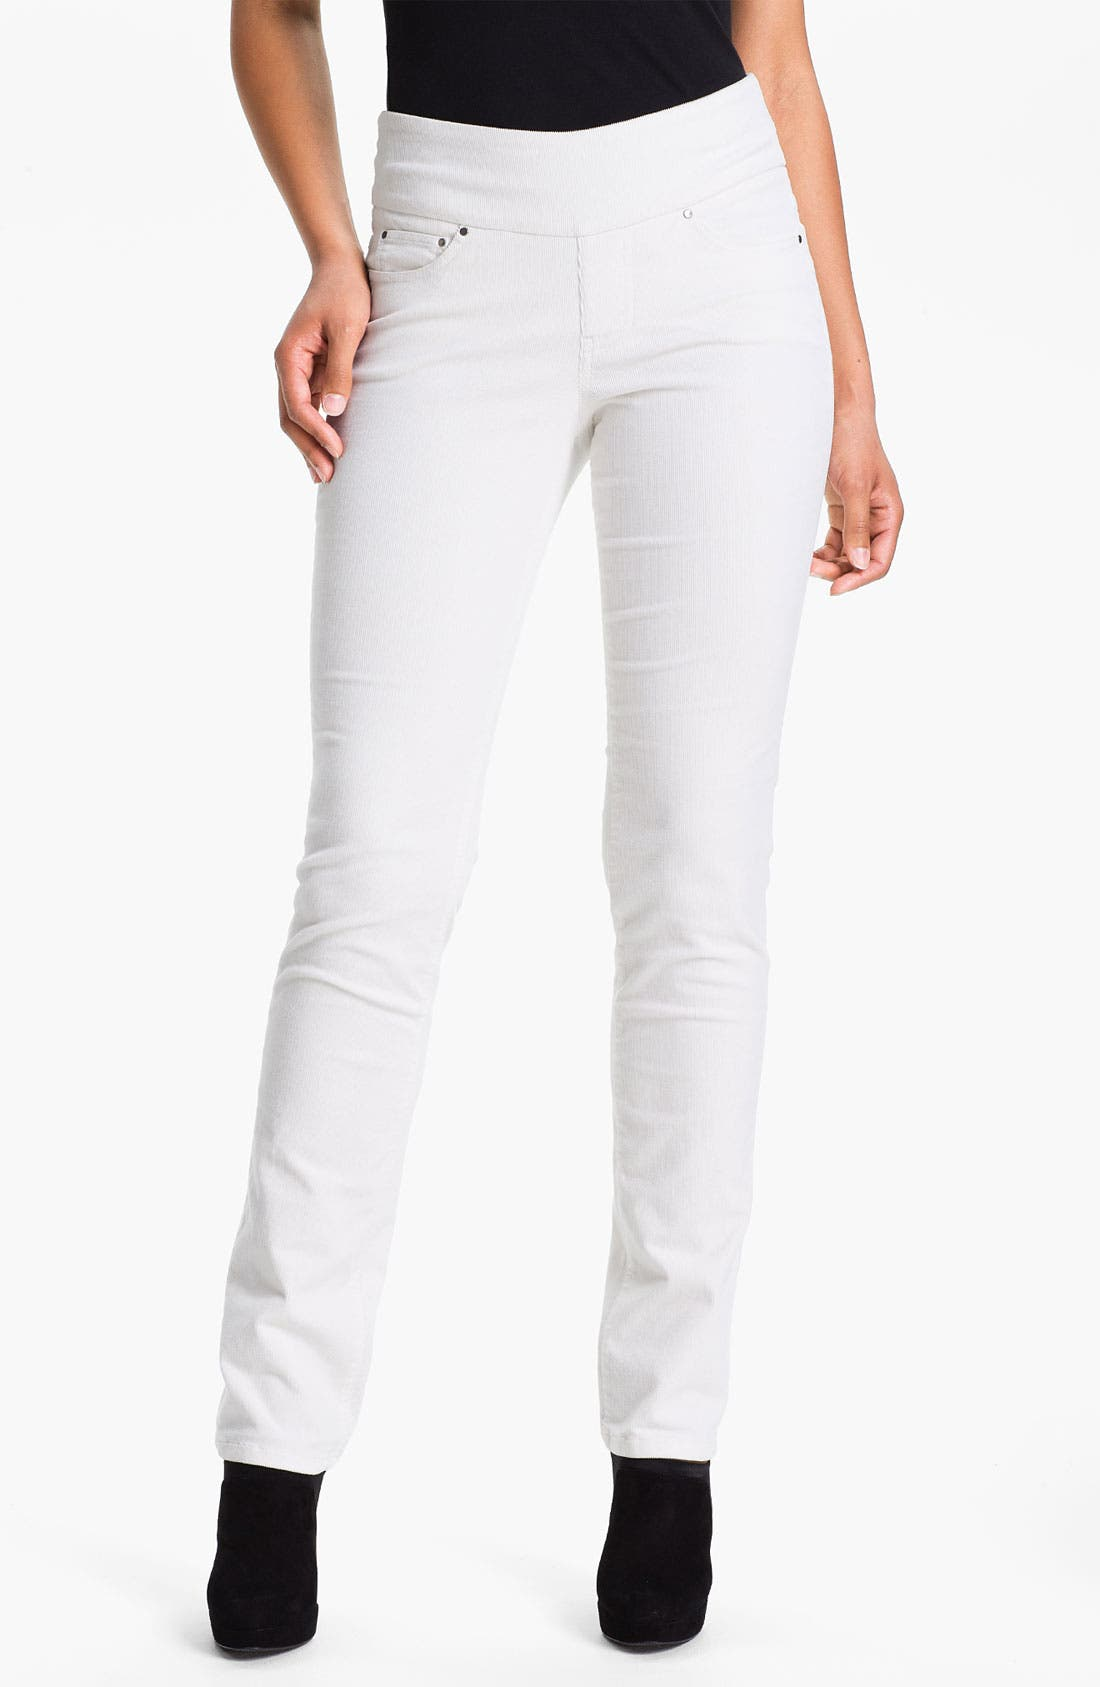 Alternate Image 1 Selected - Jag Jeans 'Peri' Straight Leg Corduroy Pants (Petite)